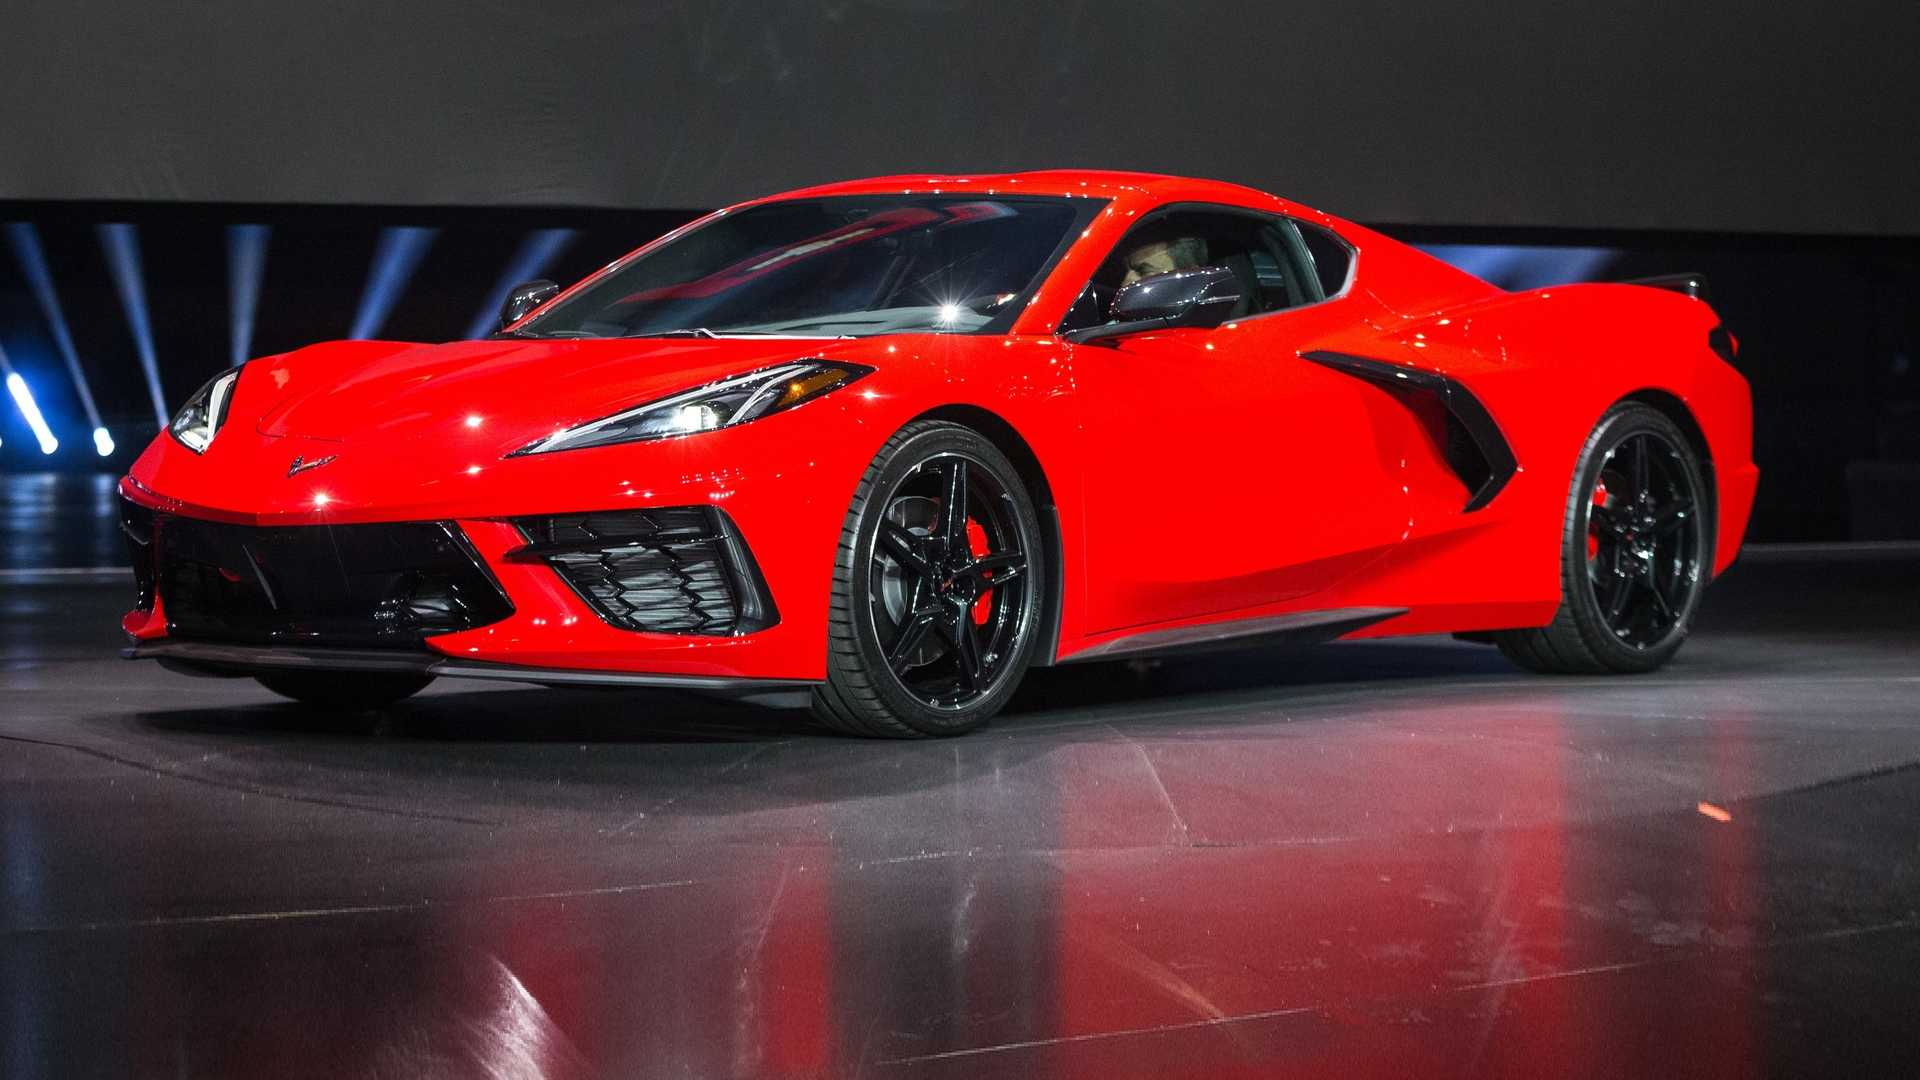 800-Hp 2022 Chevy Corvette Z06 Might Actually Be The Zr1: Report 2021 Chevy Corvette Zr1 Horsepower, Msrp, Price